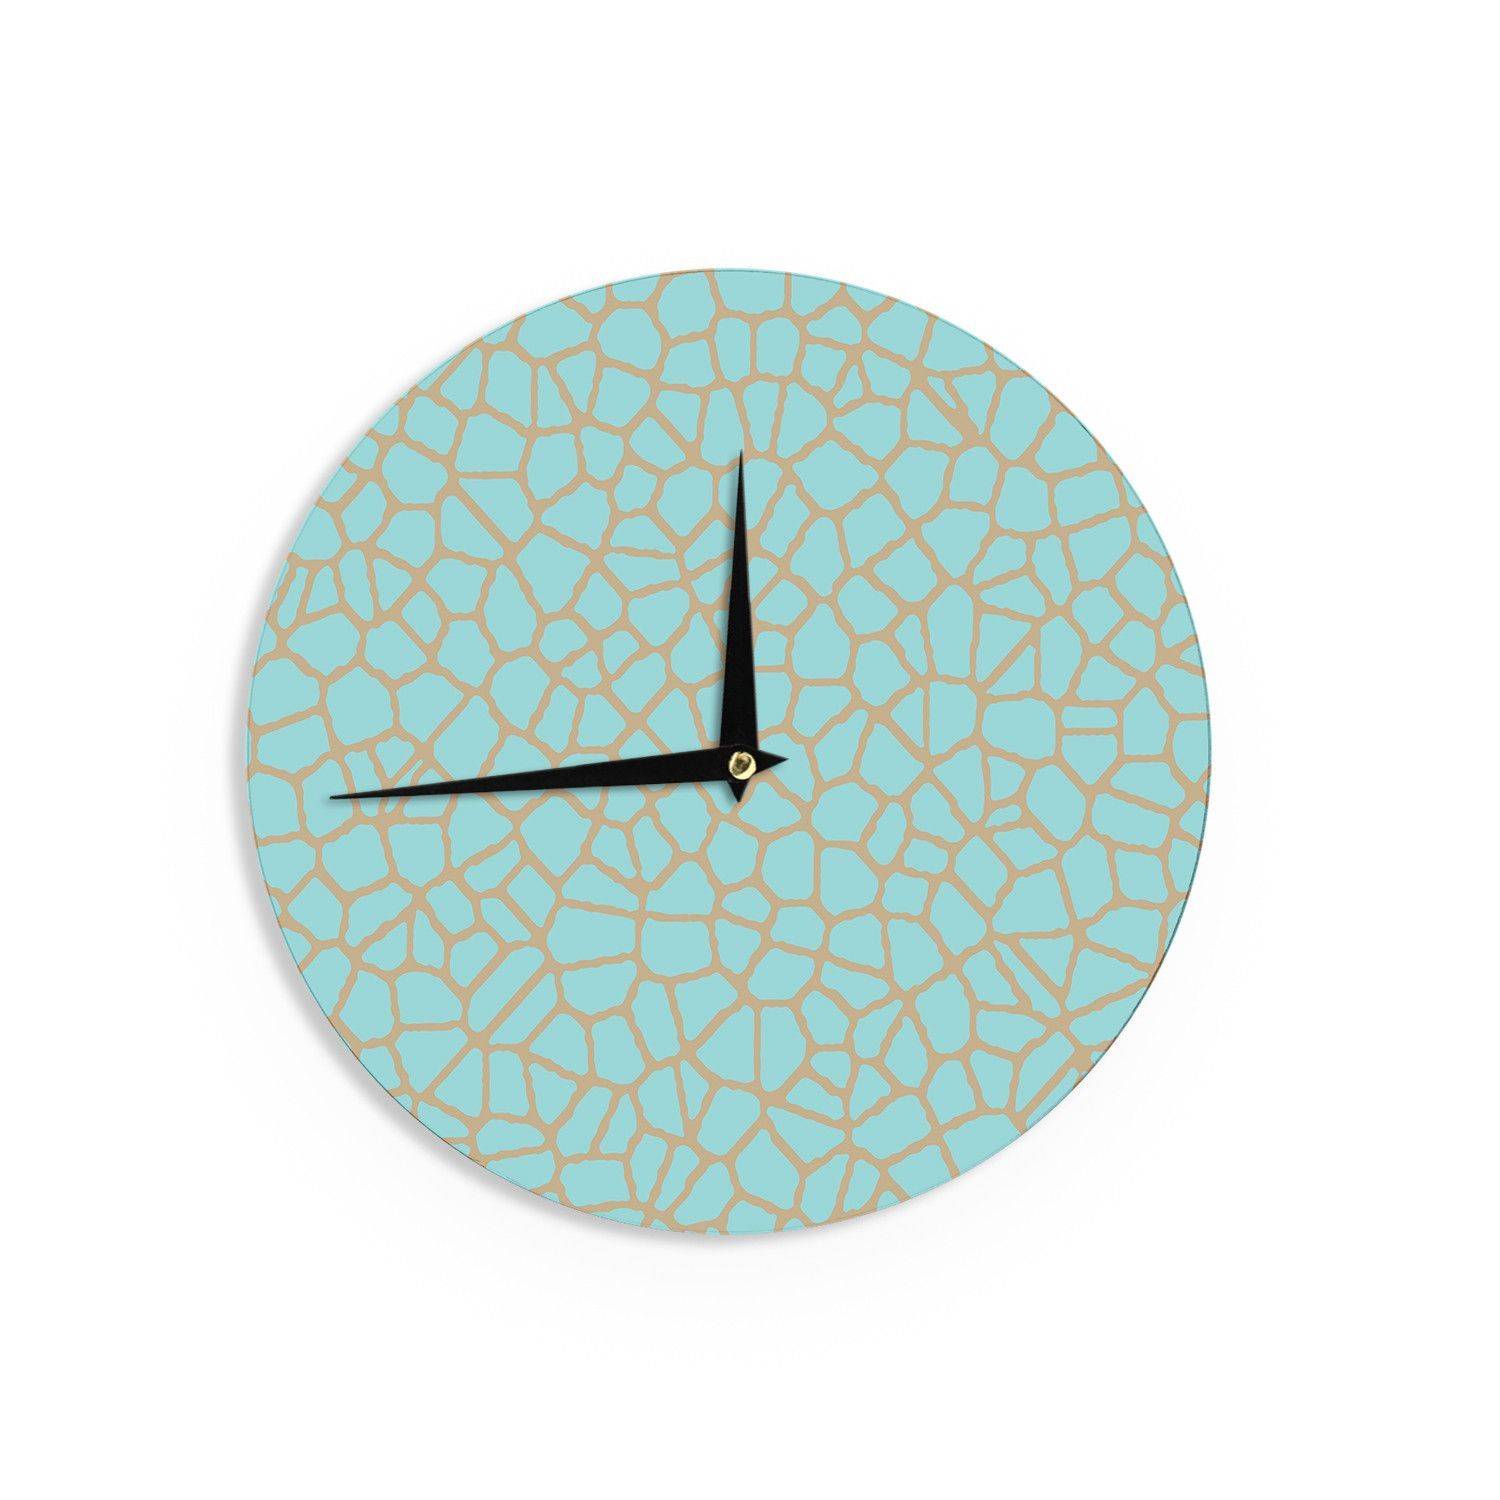 Trebam Staklo III Blue Brown Wall Clock Products Pinterest